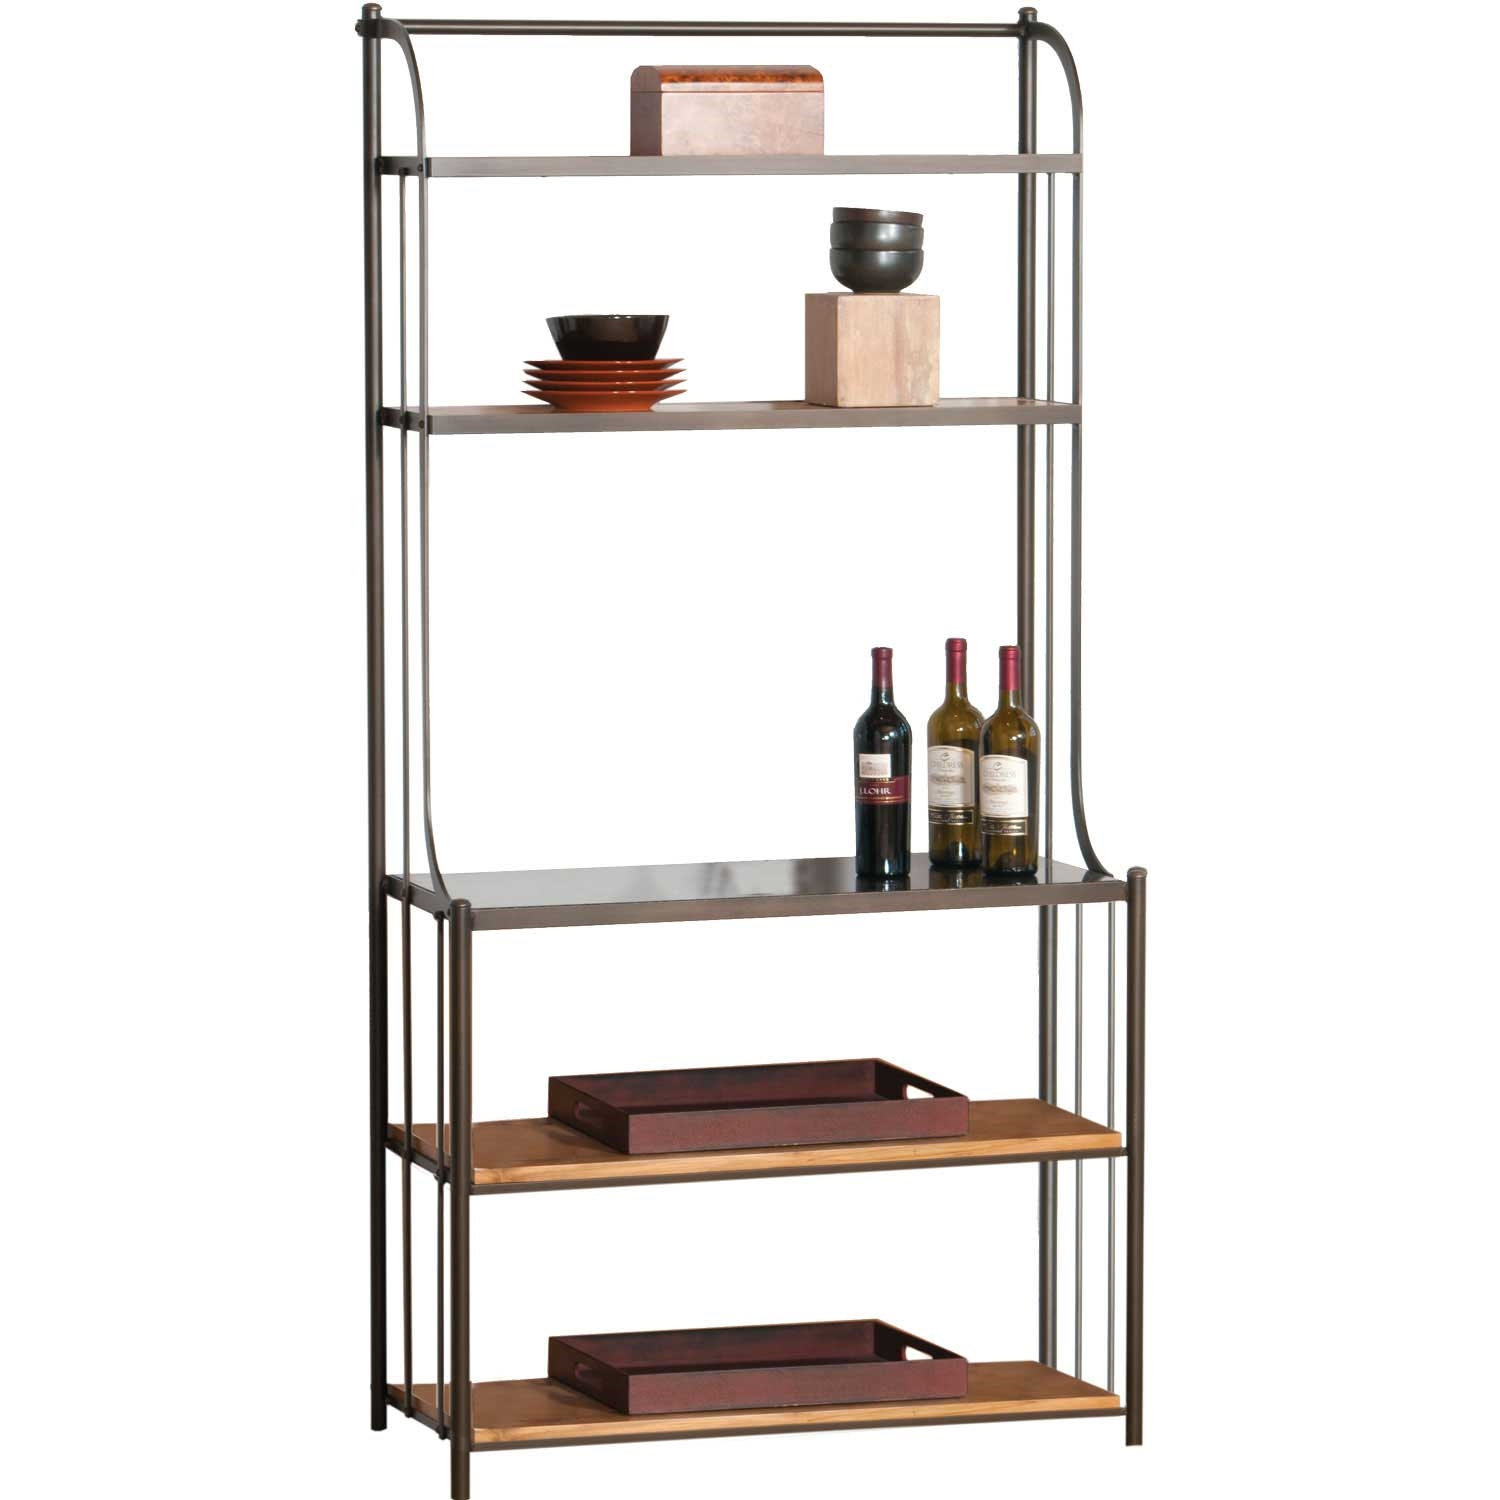 wrought iron bakers racks online timeless wrought iron